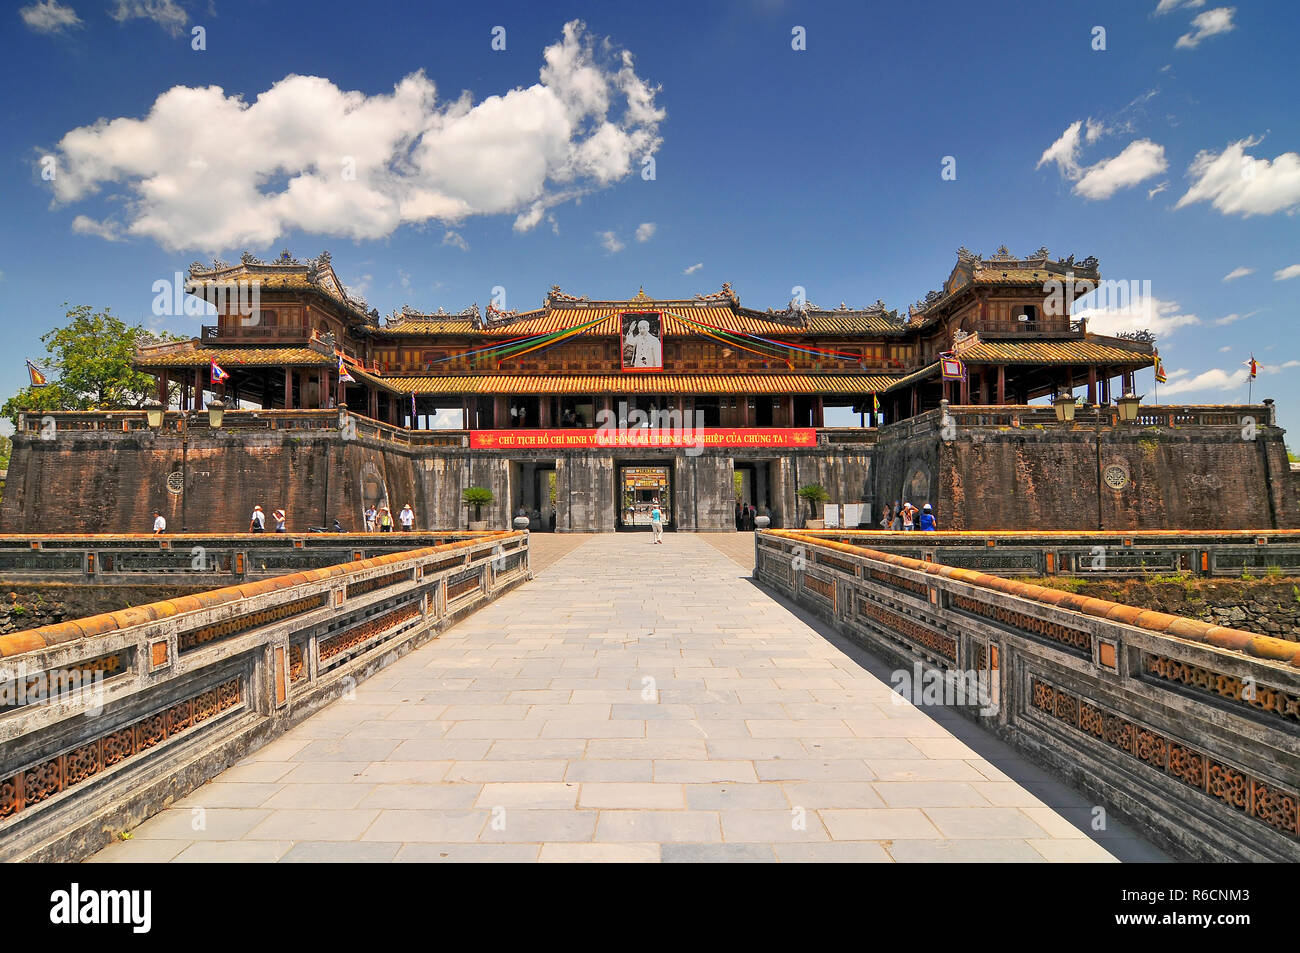 Vietnam Hue The Purple Forbidden City Imperial City Hue Vietnam Stock Photo Alamy